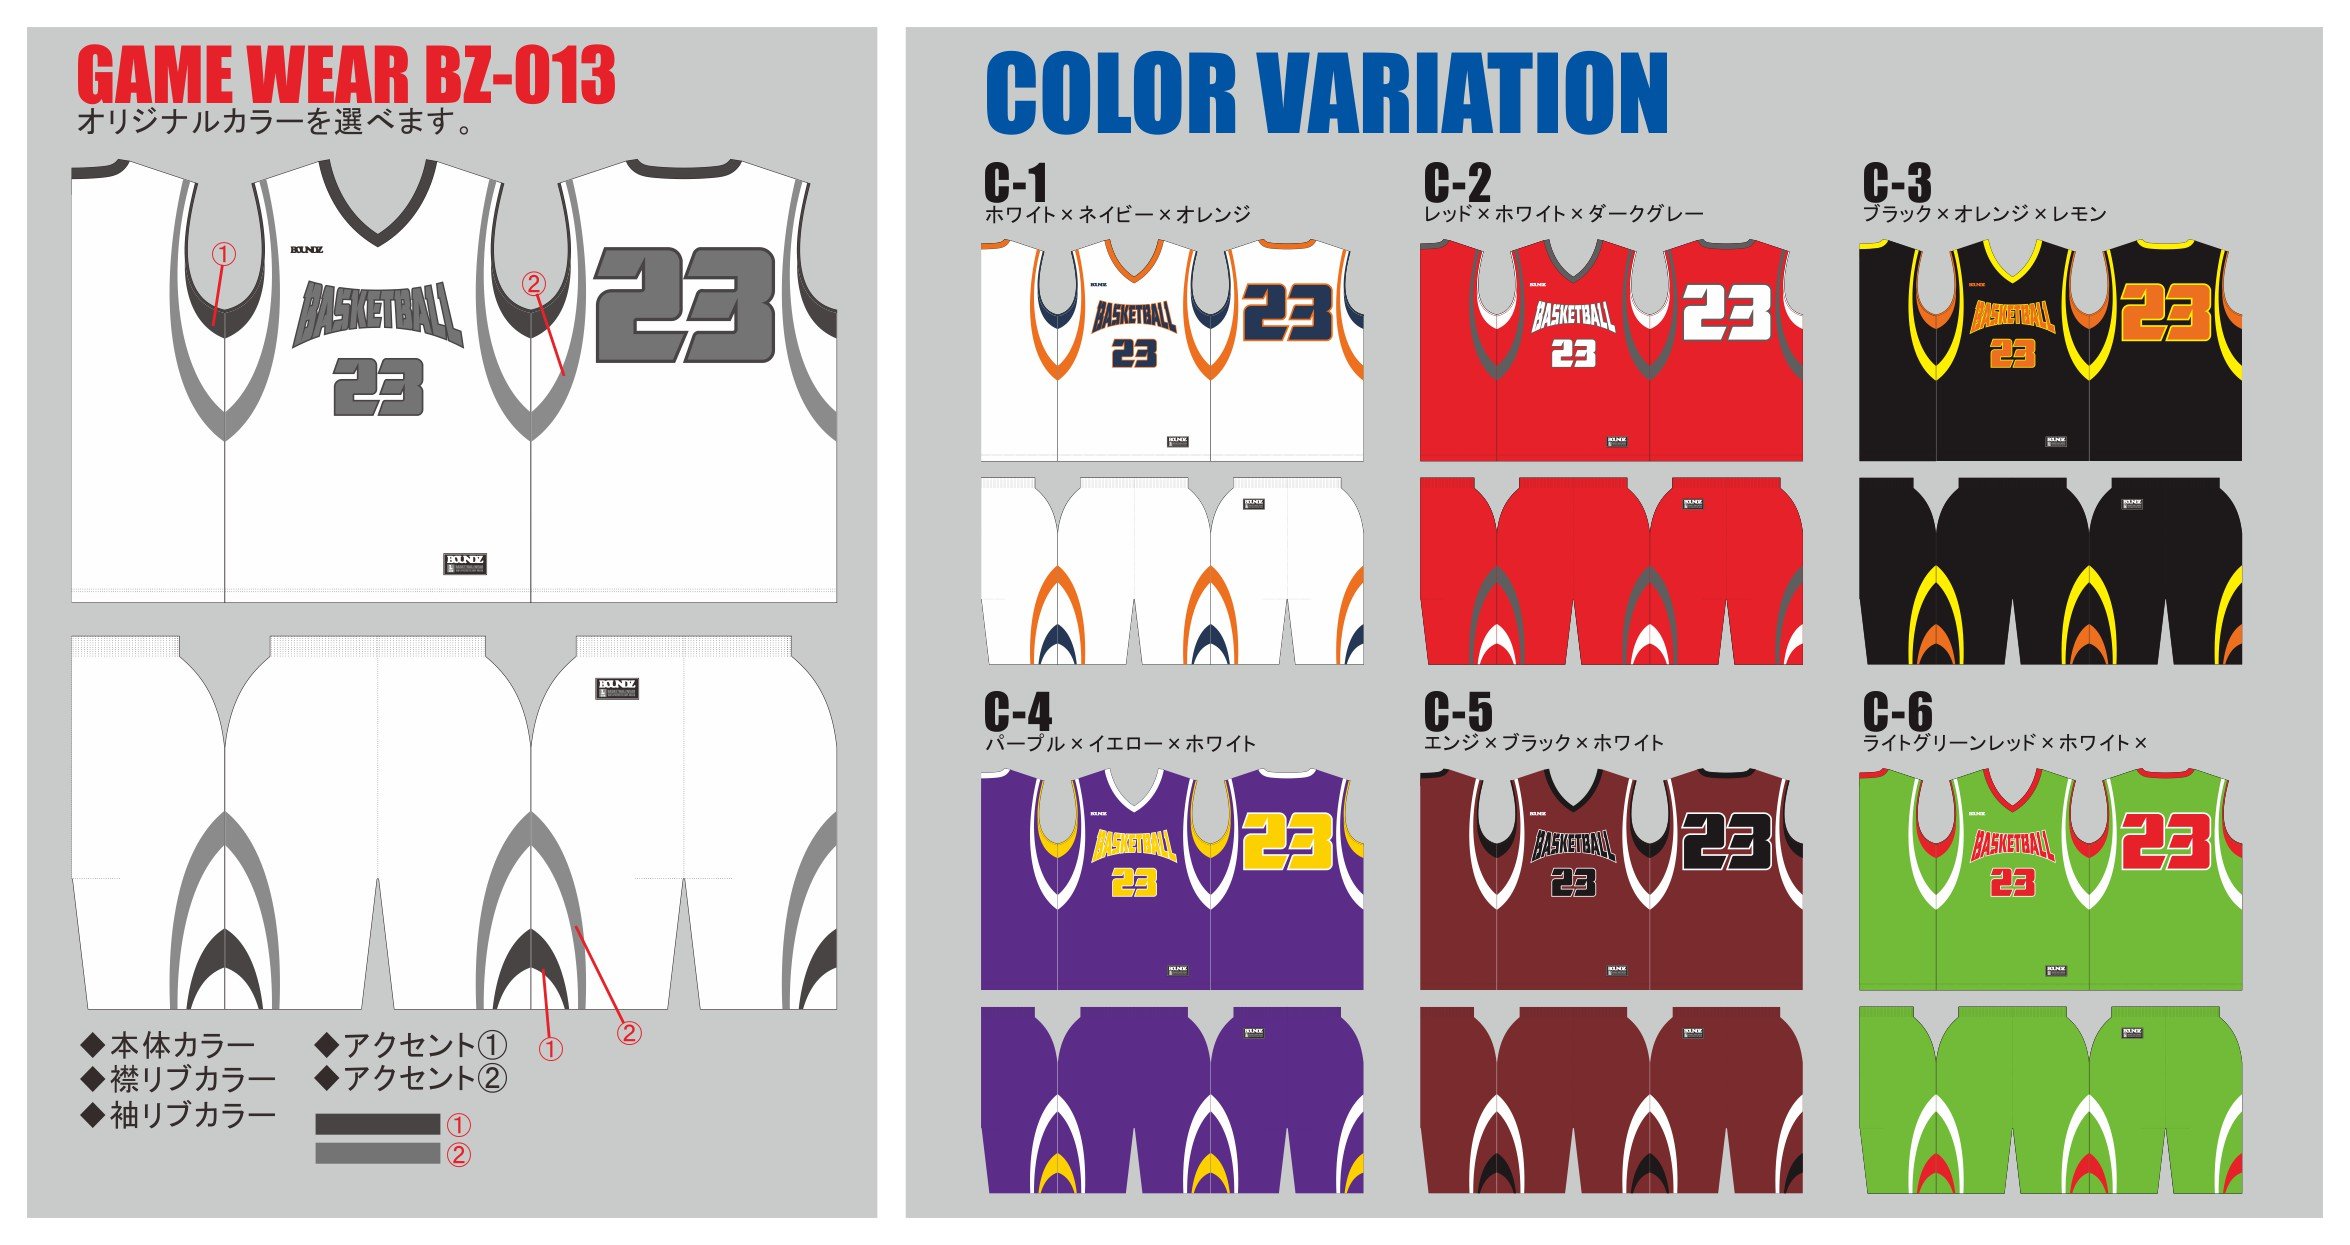 GAME_WEAR_BZ013_color_shirt